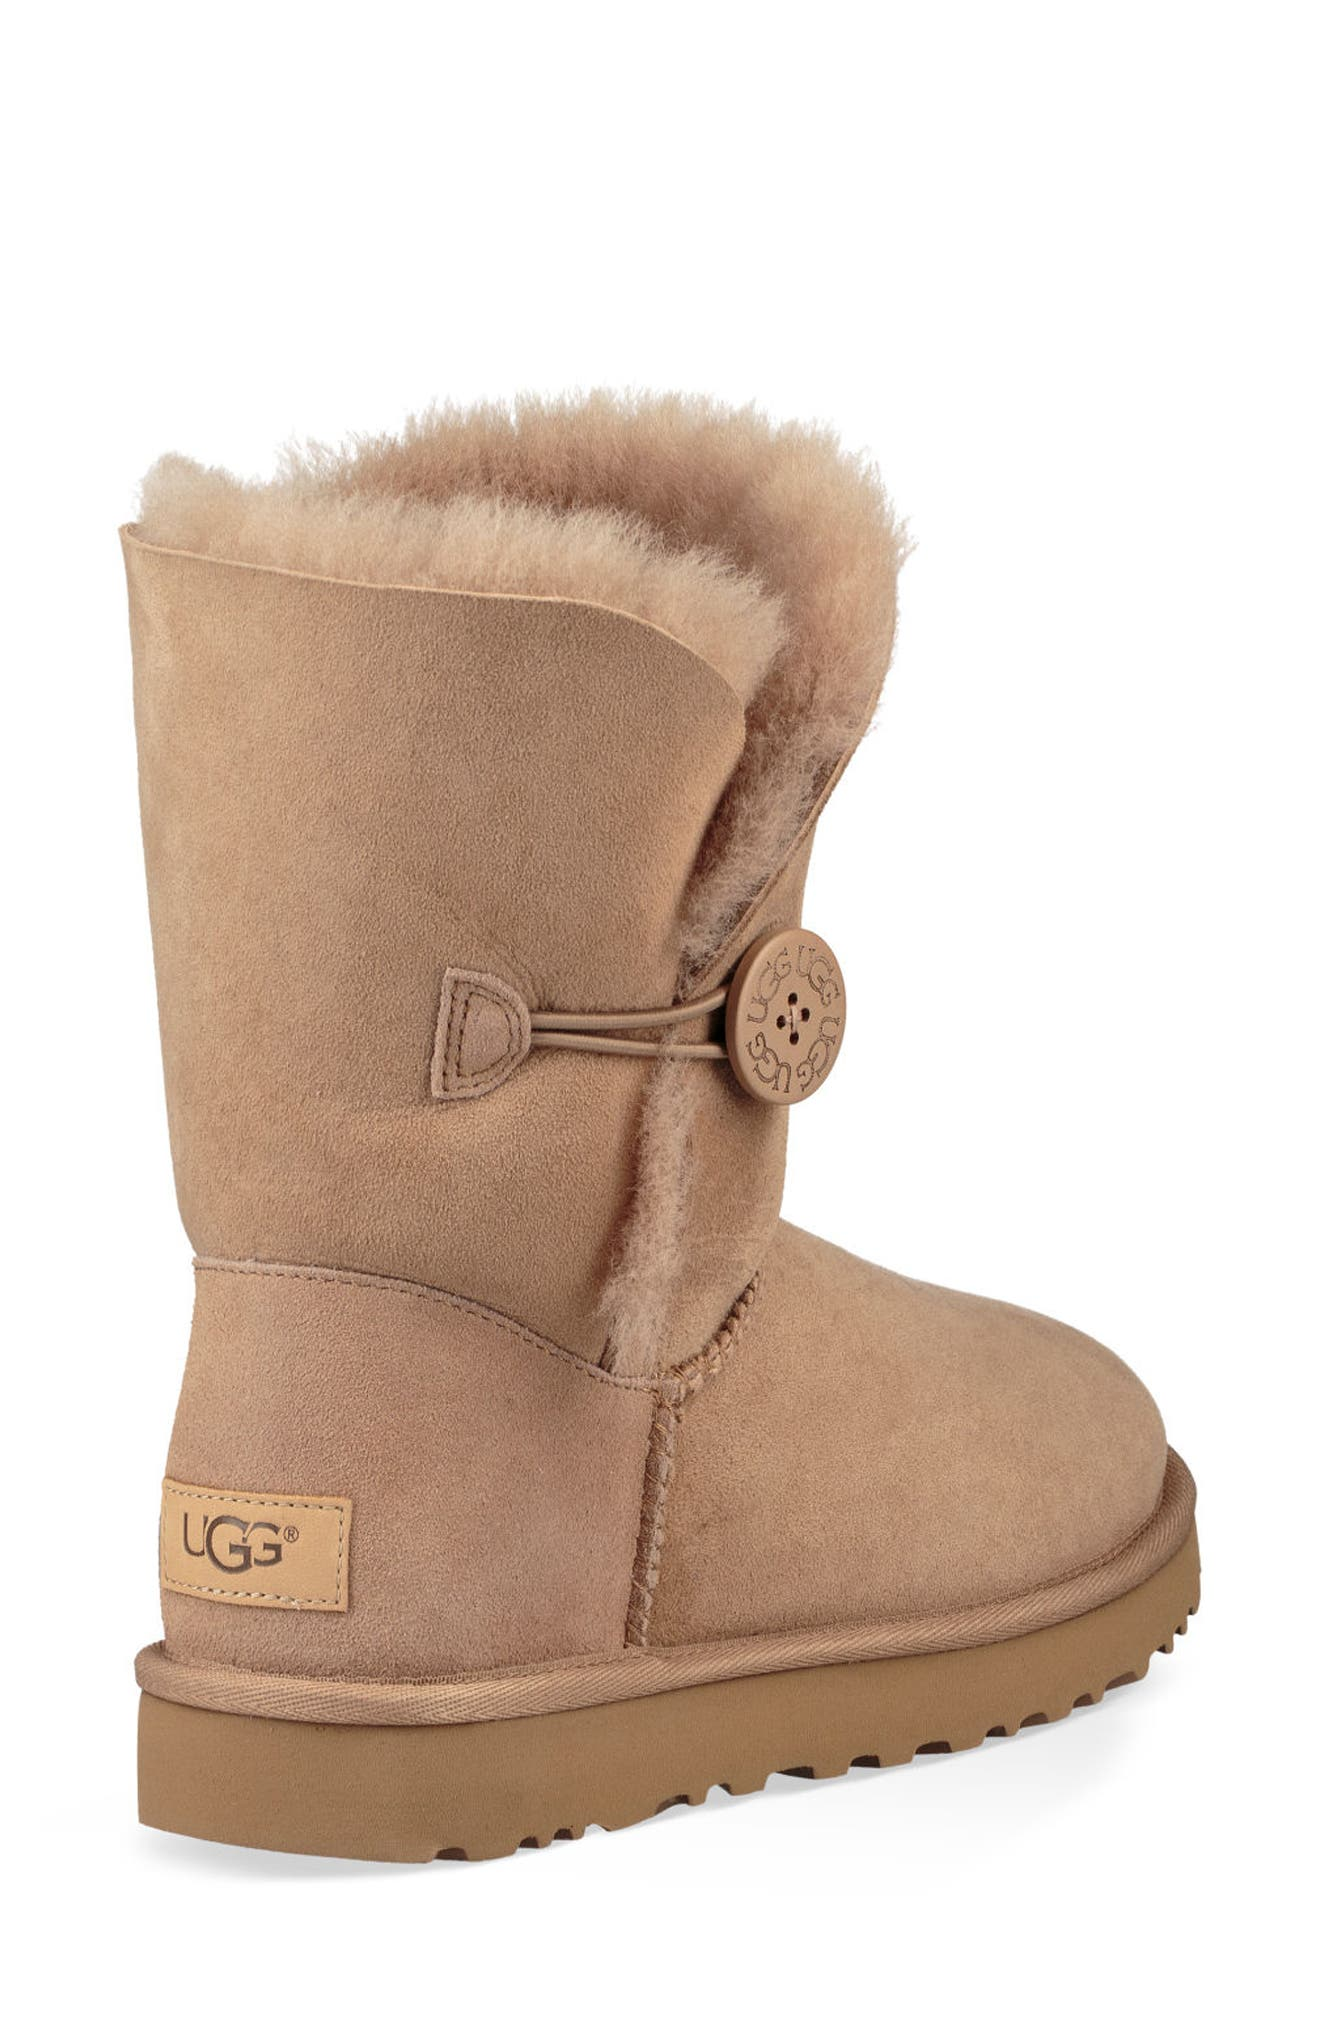 6b579653ba ... clearance ugg bailey button boots nordstrom cf025 d6644